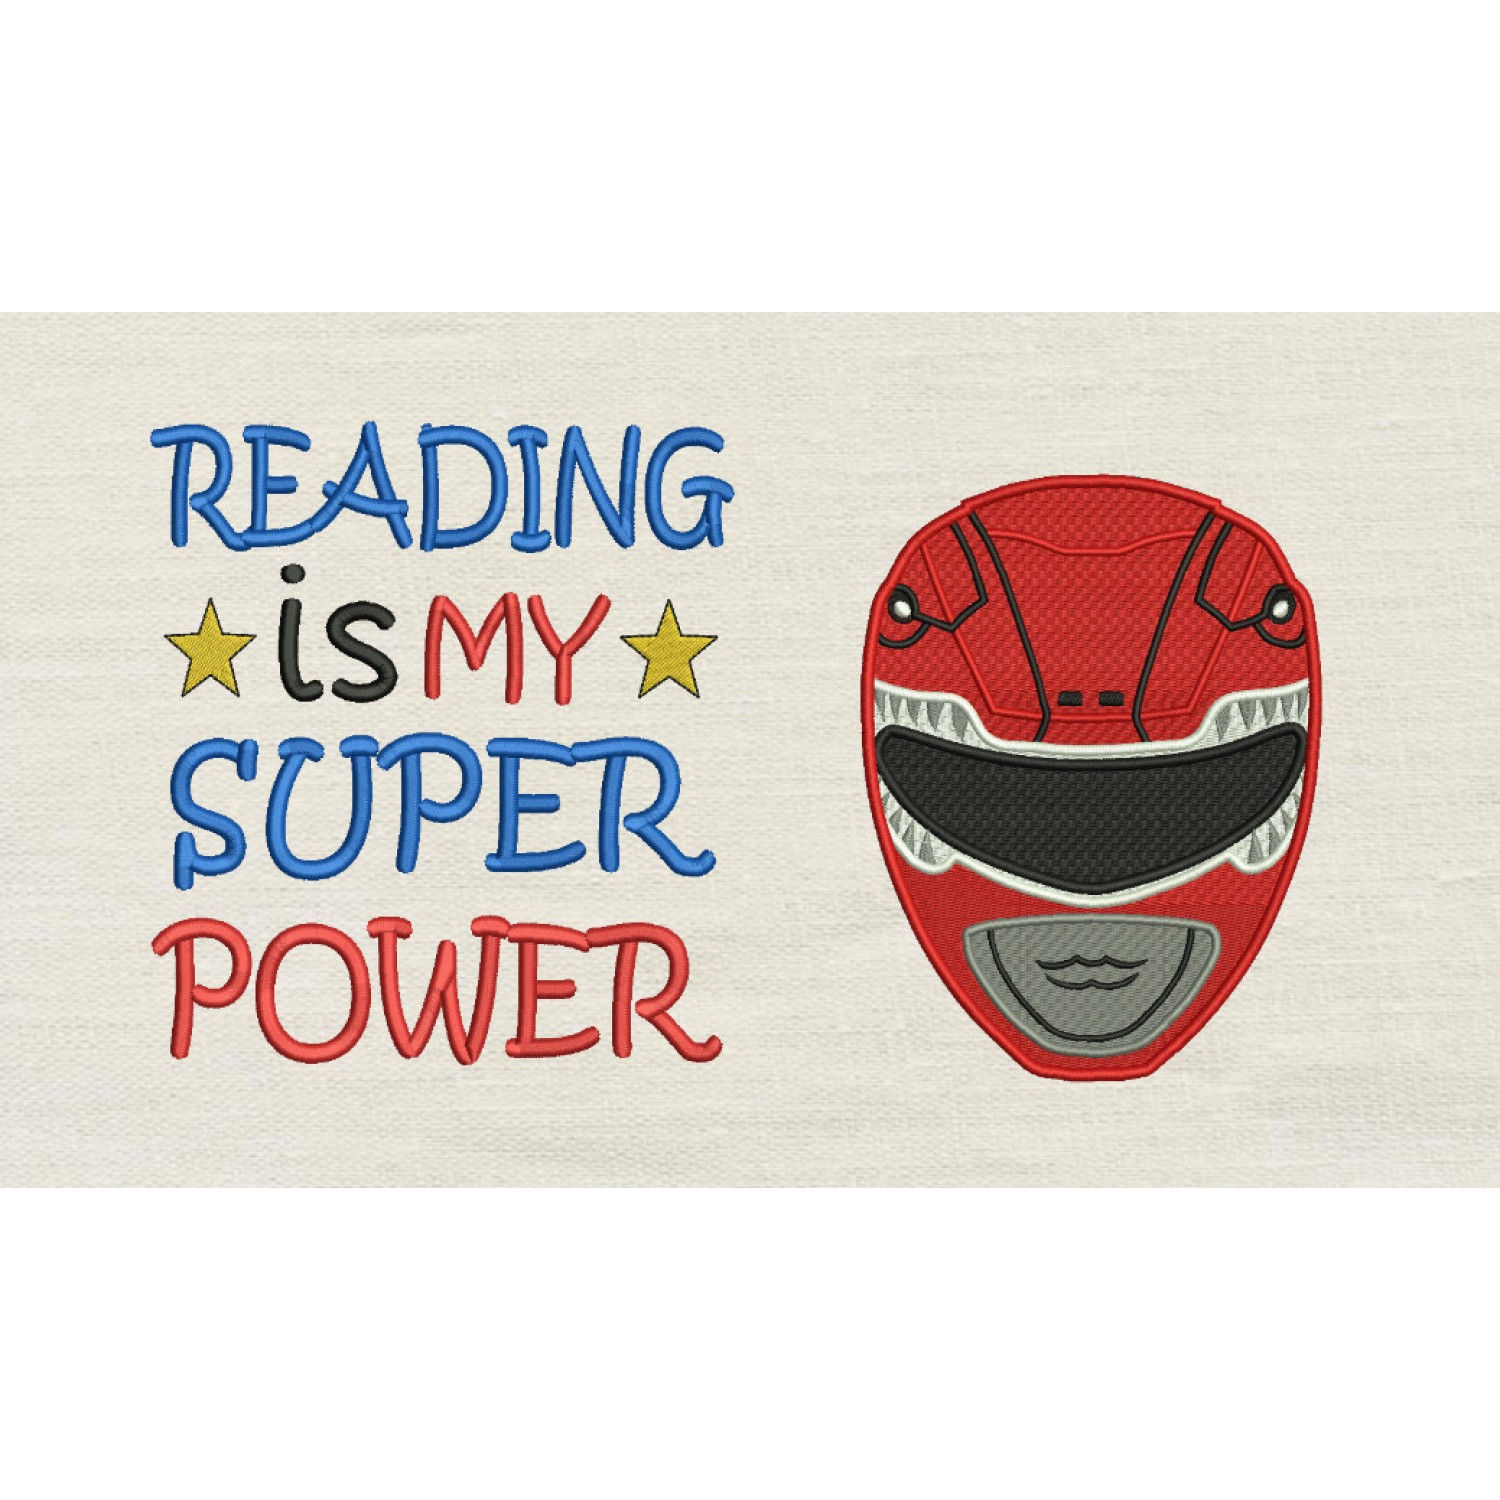 Power Ranger Embroidery with Reading is My Superpower